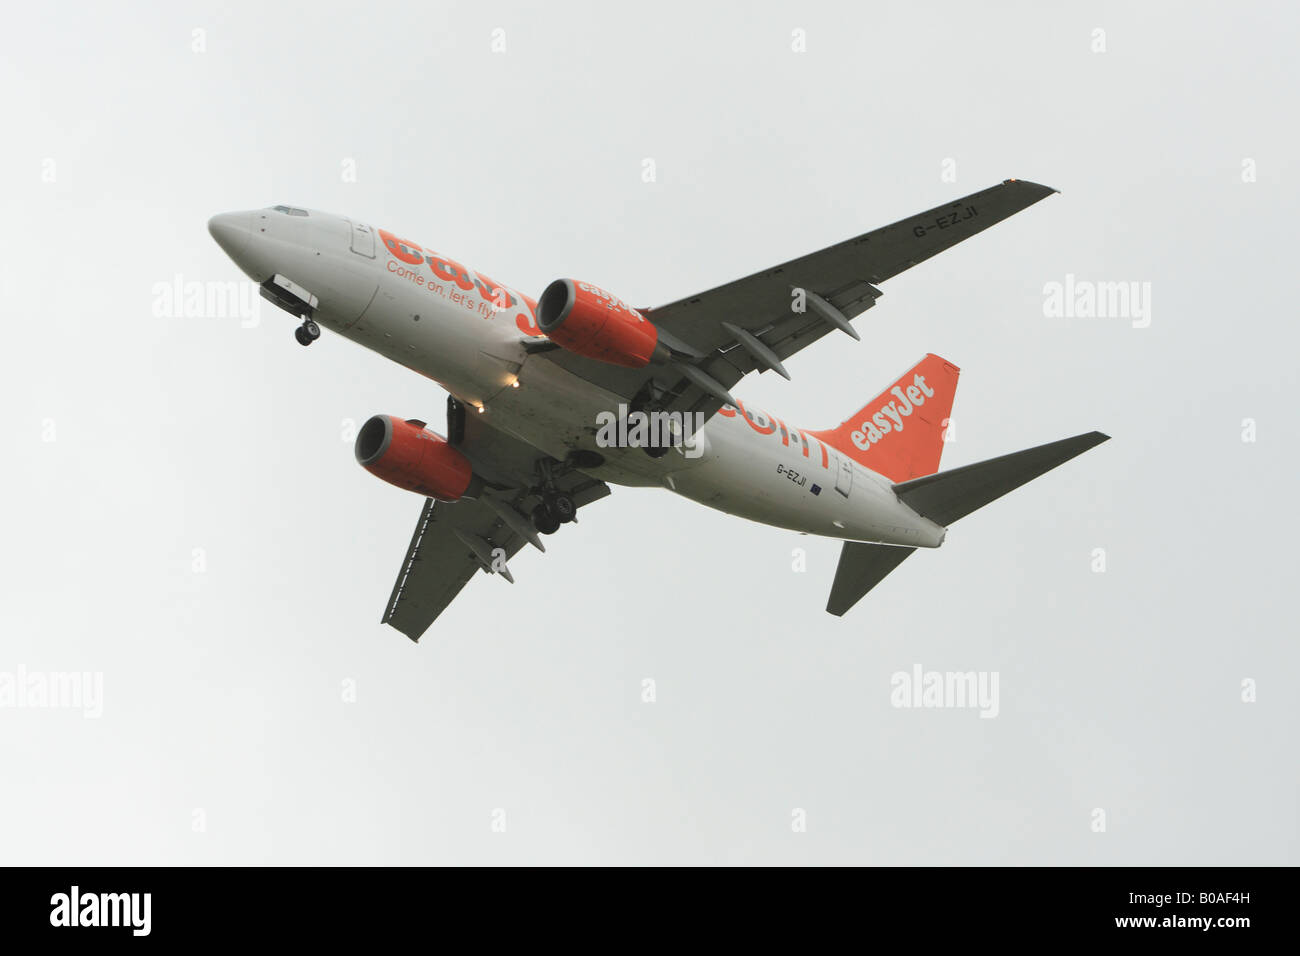 Aircraft on final approach to landing at Luton Airport Stock Photo